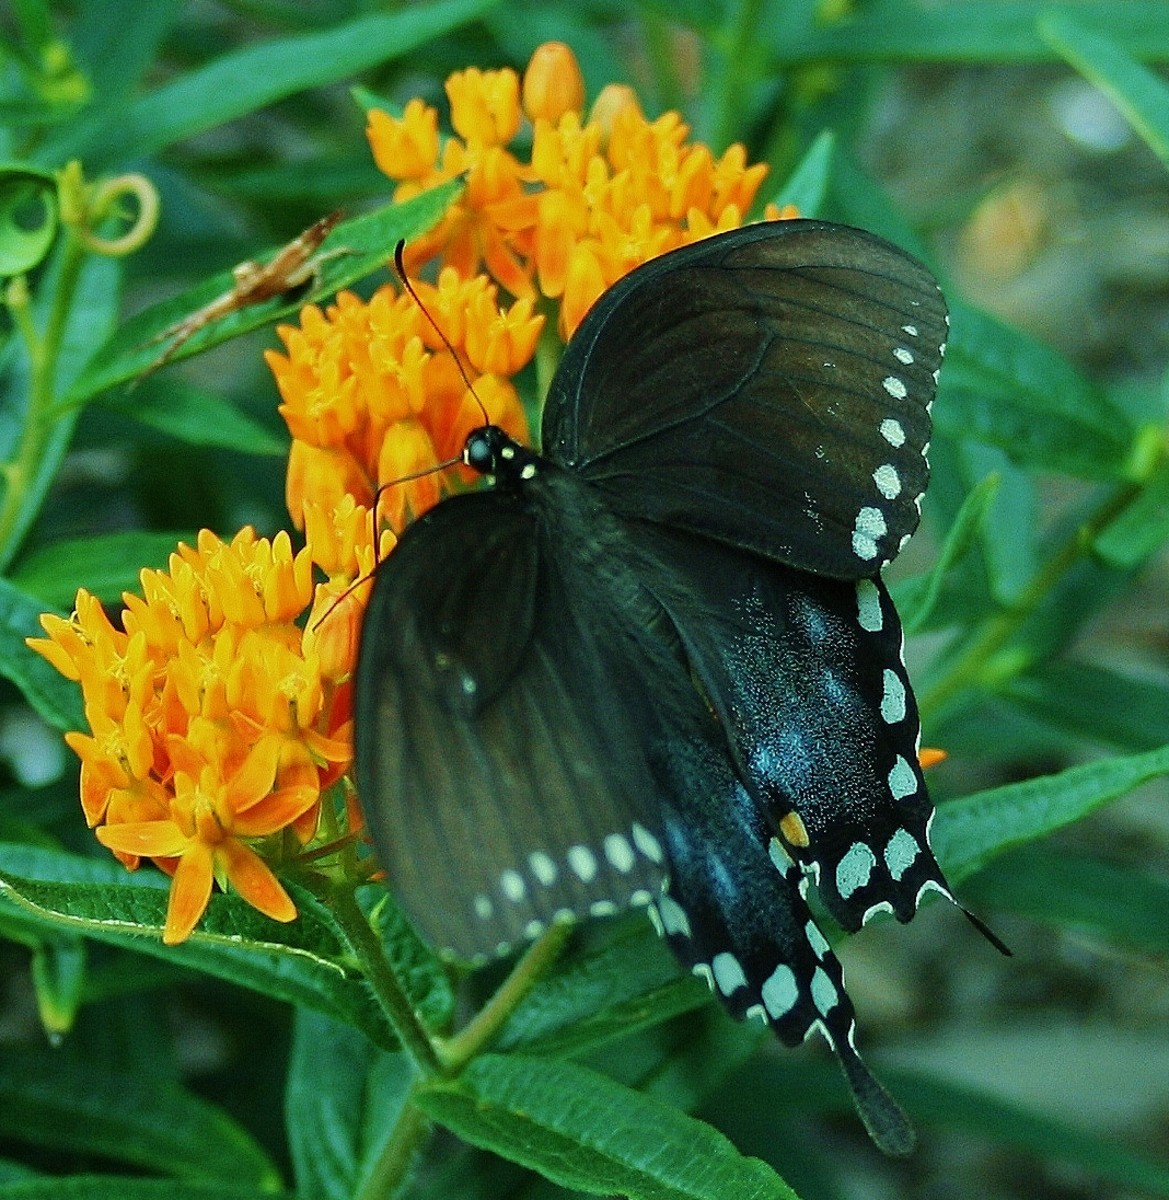 A female black swallowtail on butterfly weed in our front yard, where she laid eggs.